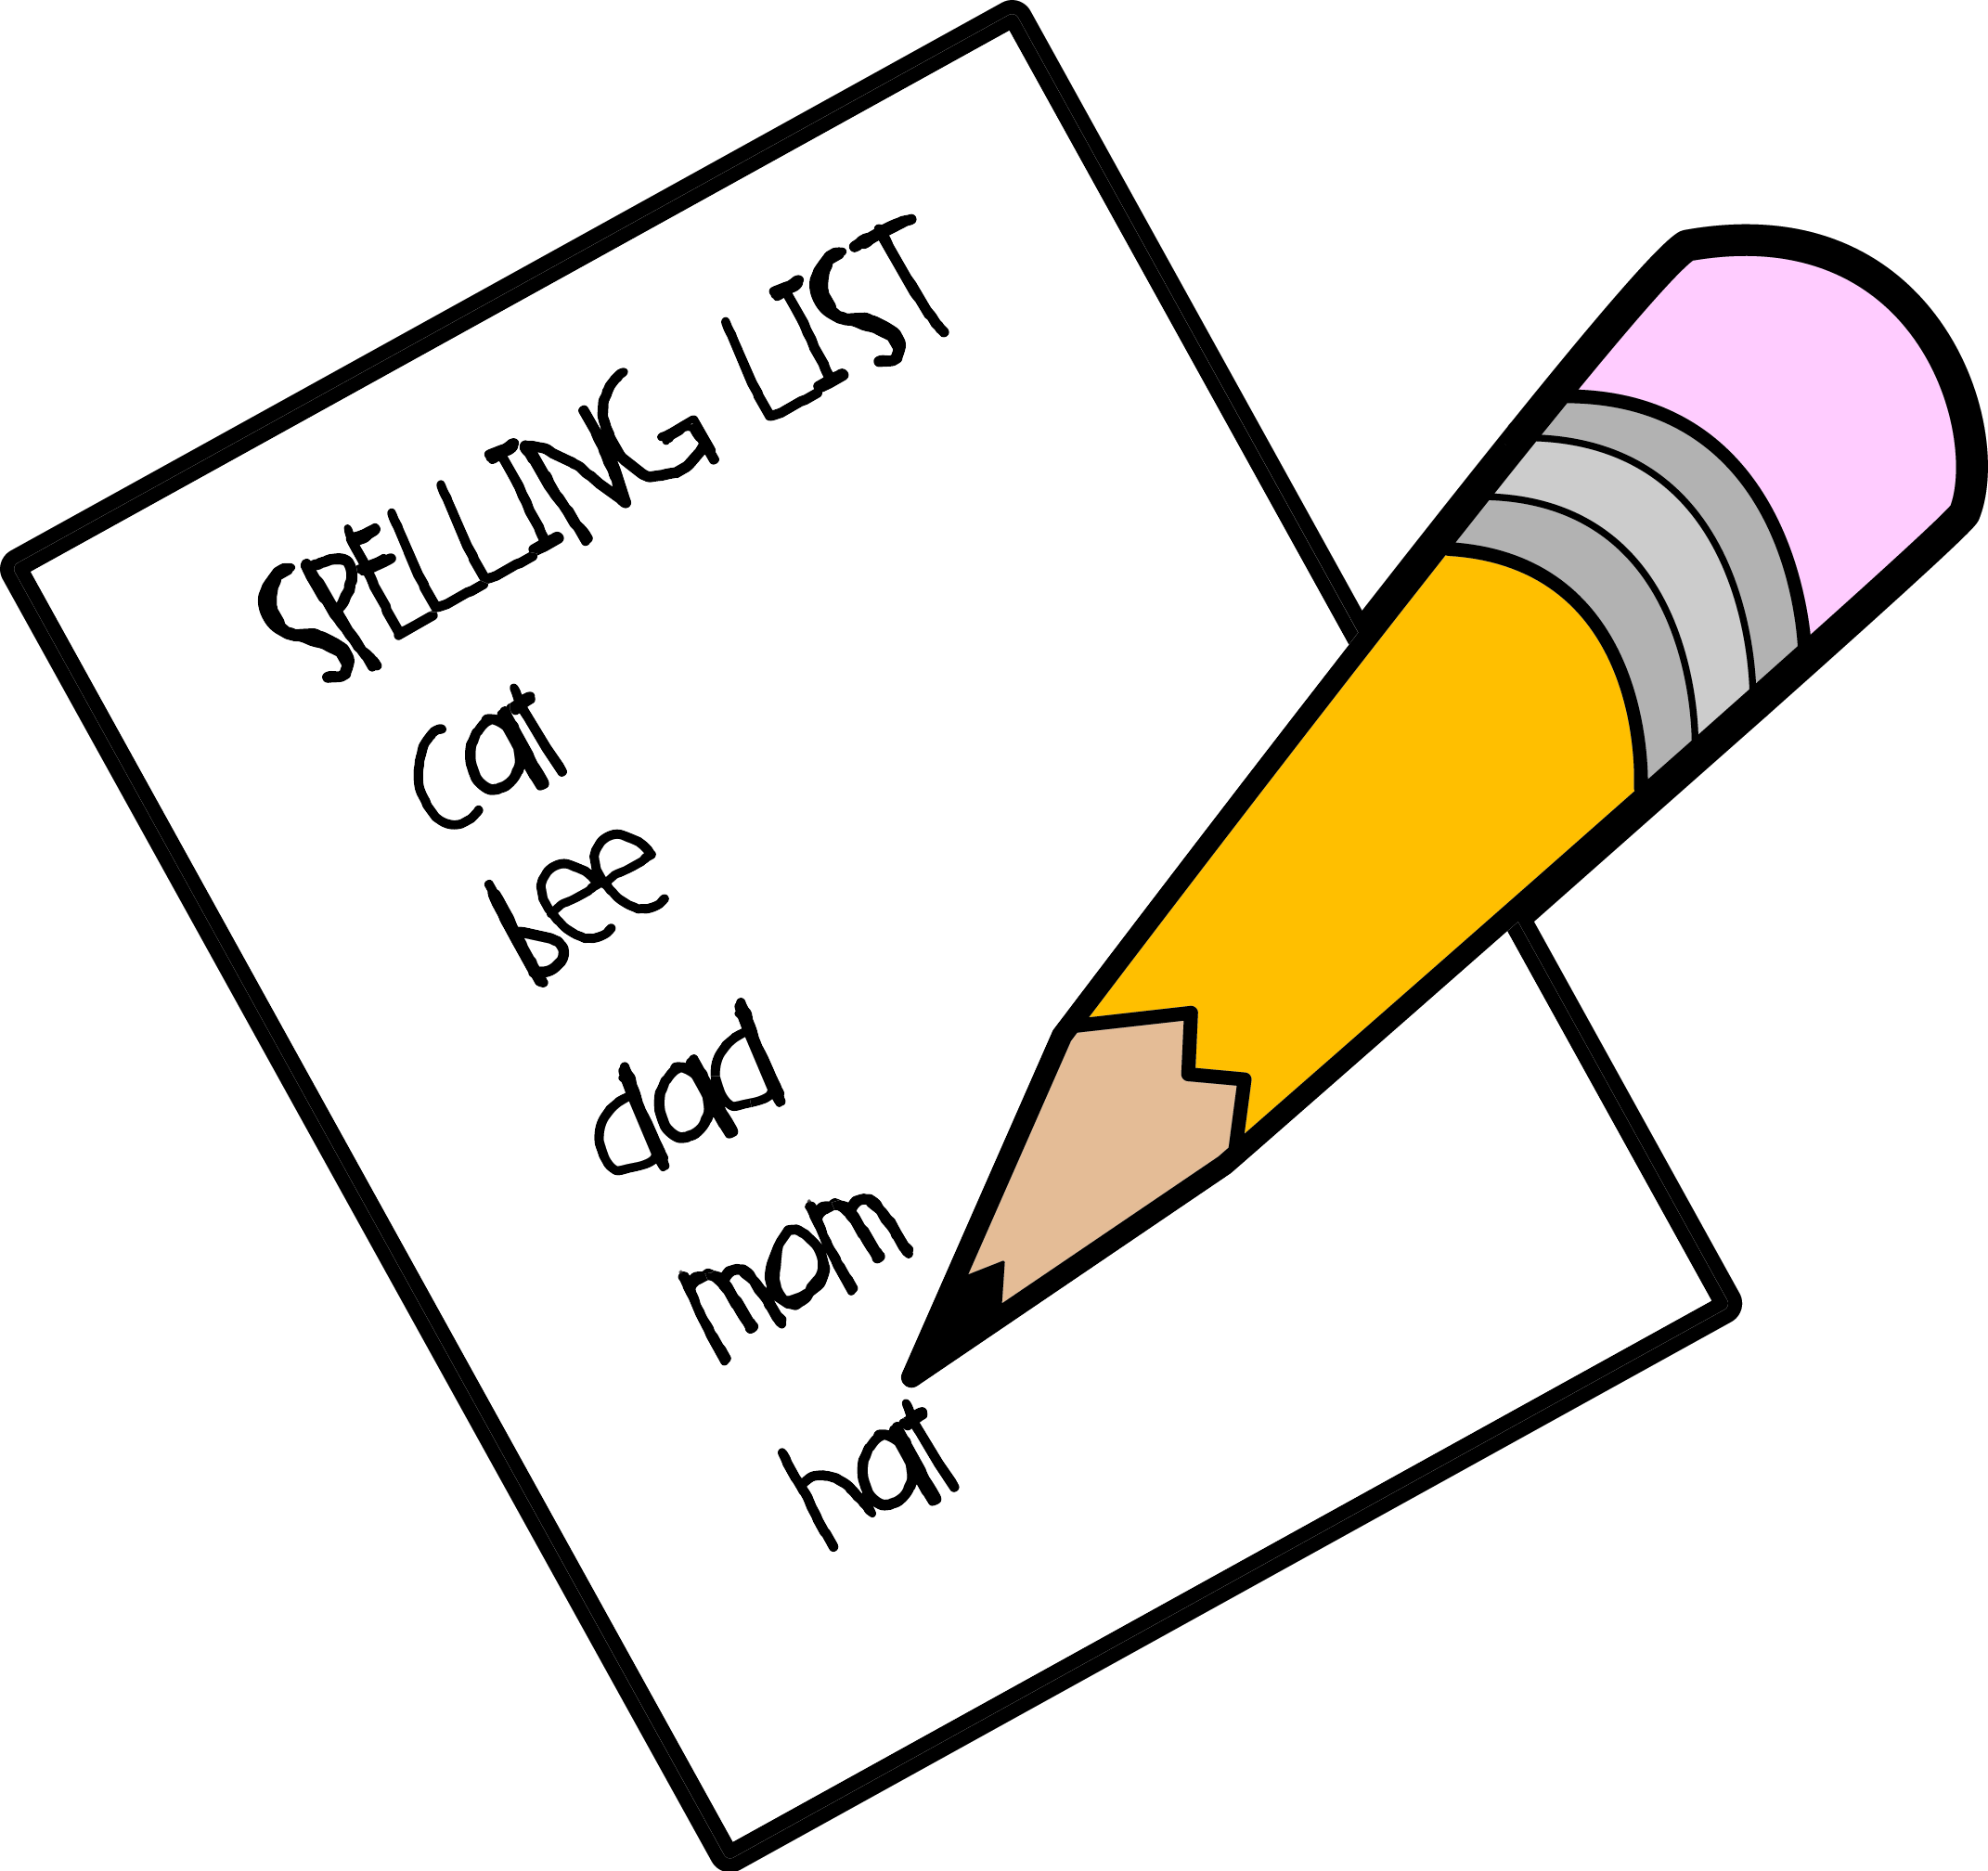 Spelling clipart word choice. This is best list